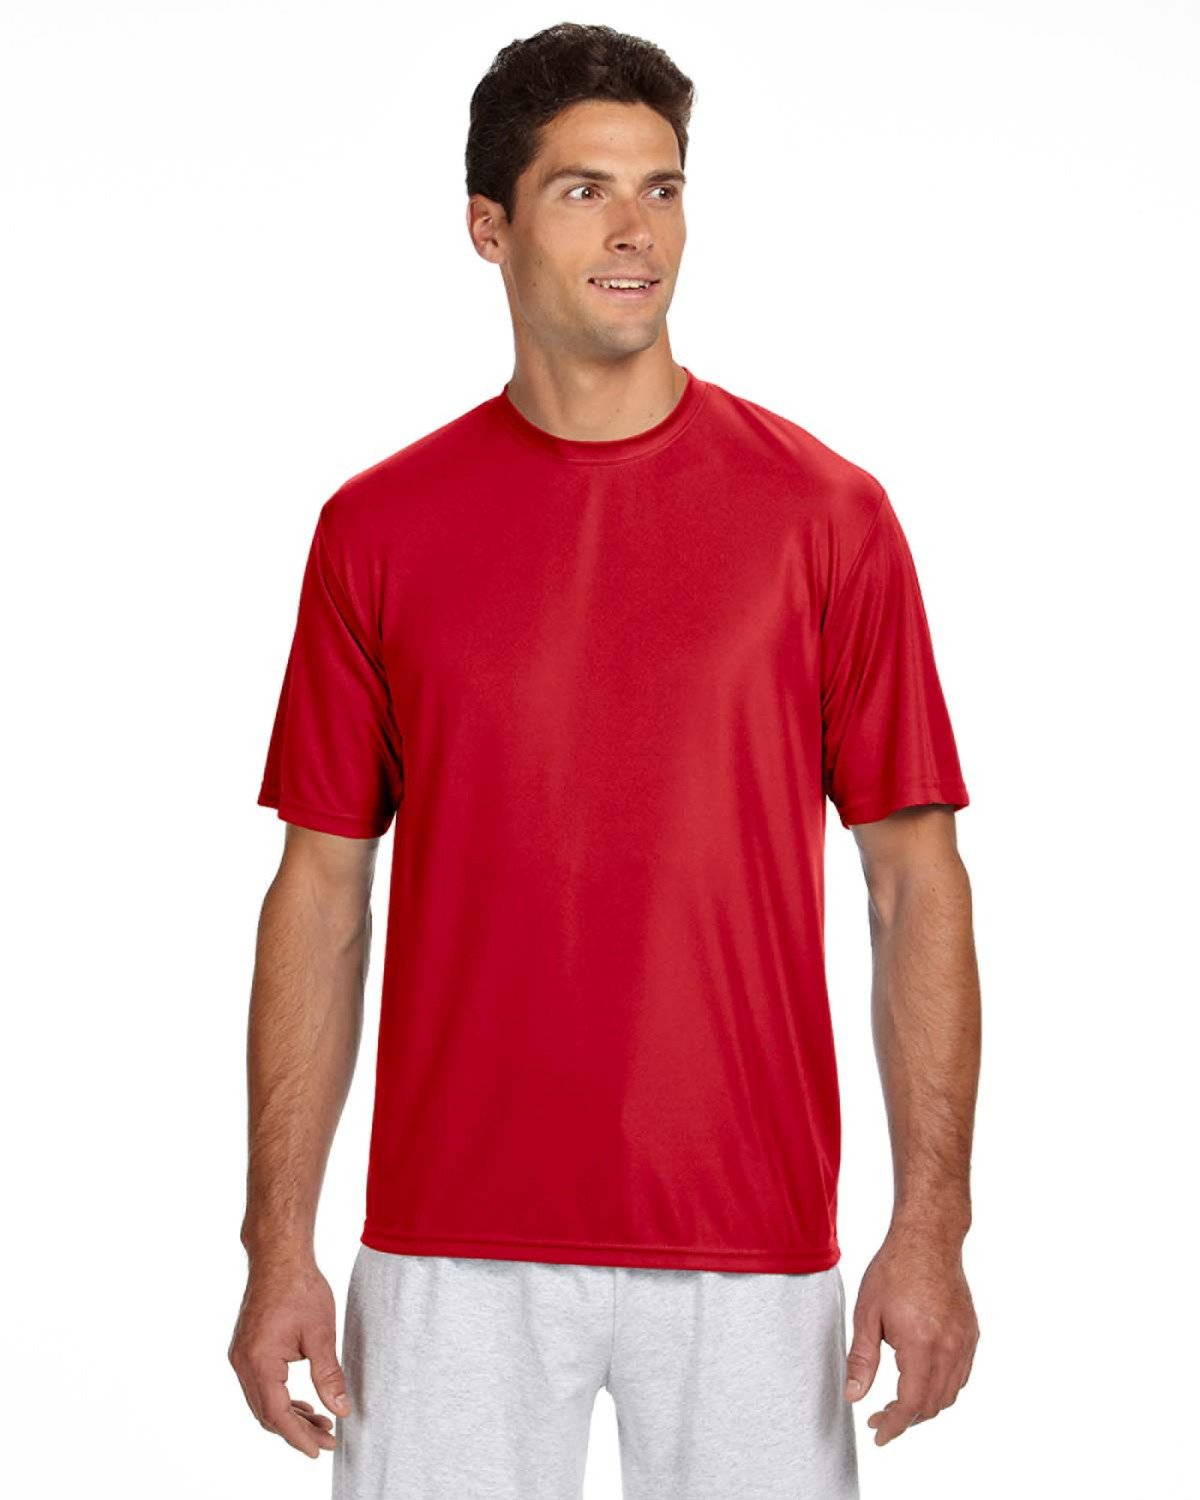 A4 Men's Cooling Performance T-Shirt SCARLET